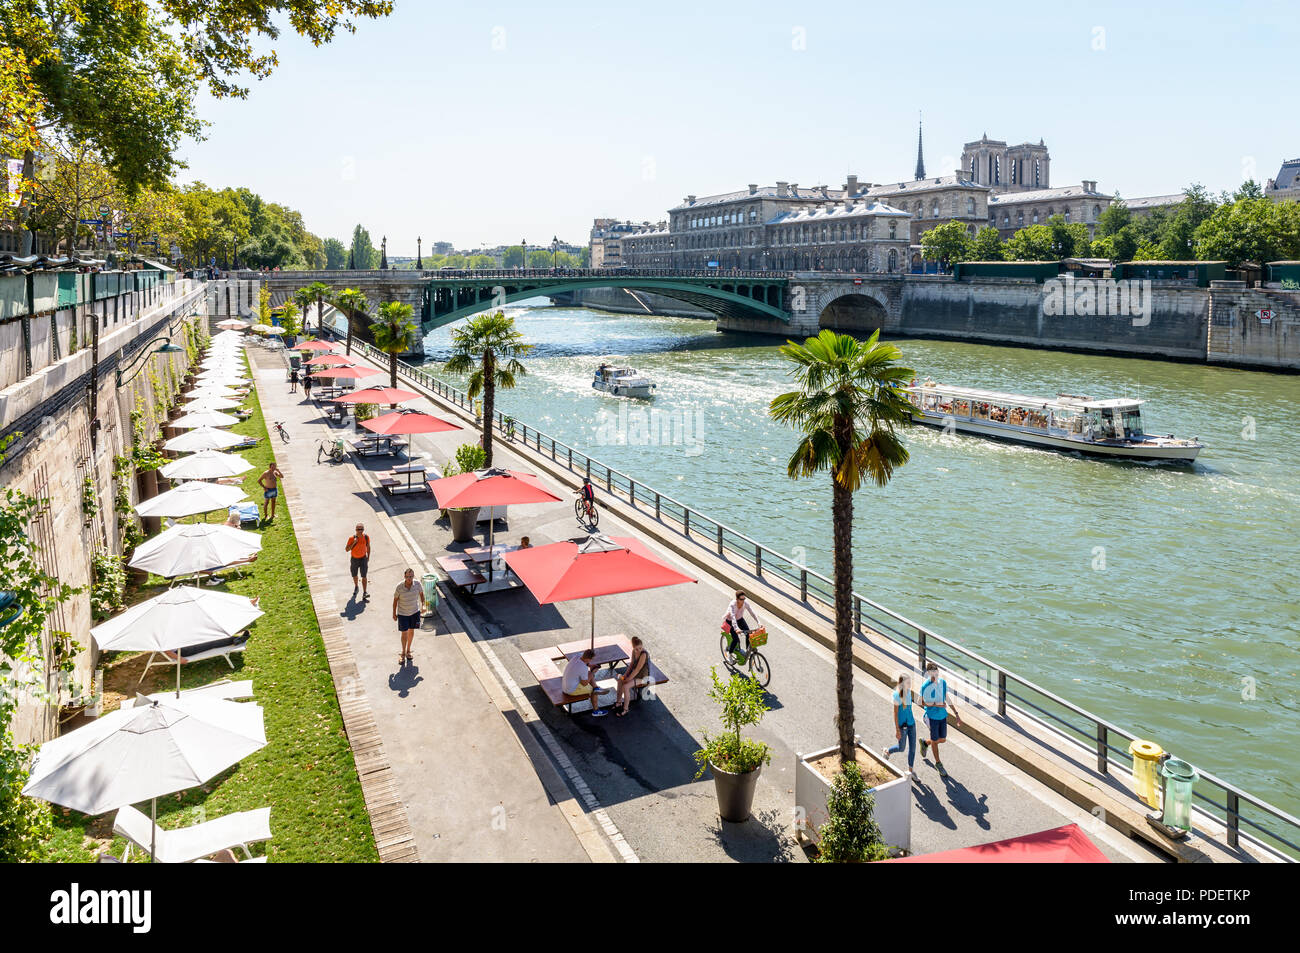 The banks of the Seine during Paris-Plages summer event in Paris, France, with boats passing by and Notre-Dame de Paris cathedral in the background. - Stock Image